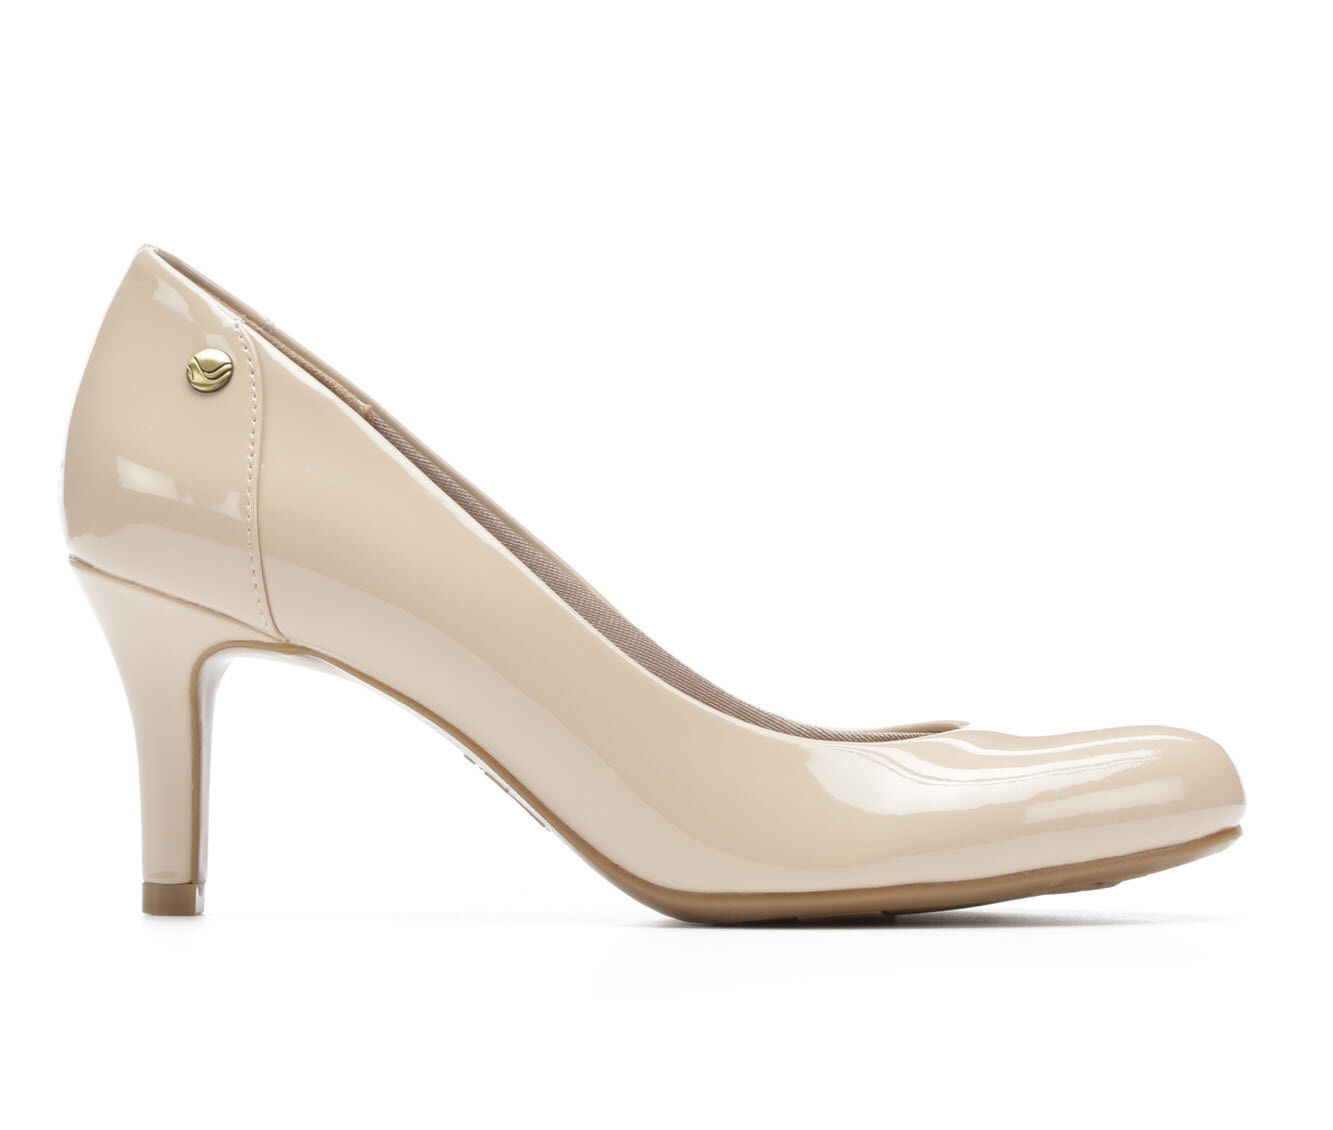 Wholesale Prices Women's LifeStride Lively Pumps Tender Taupe